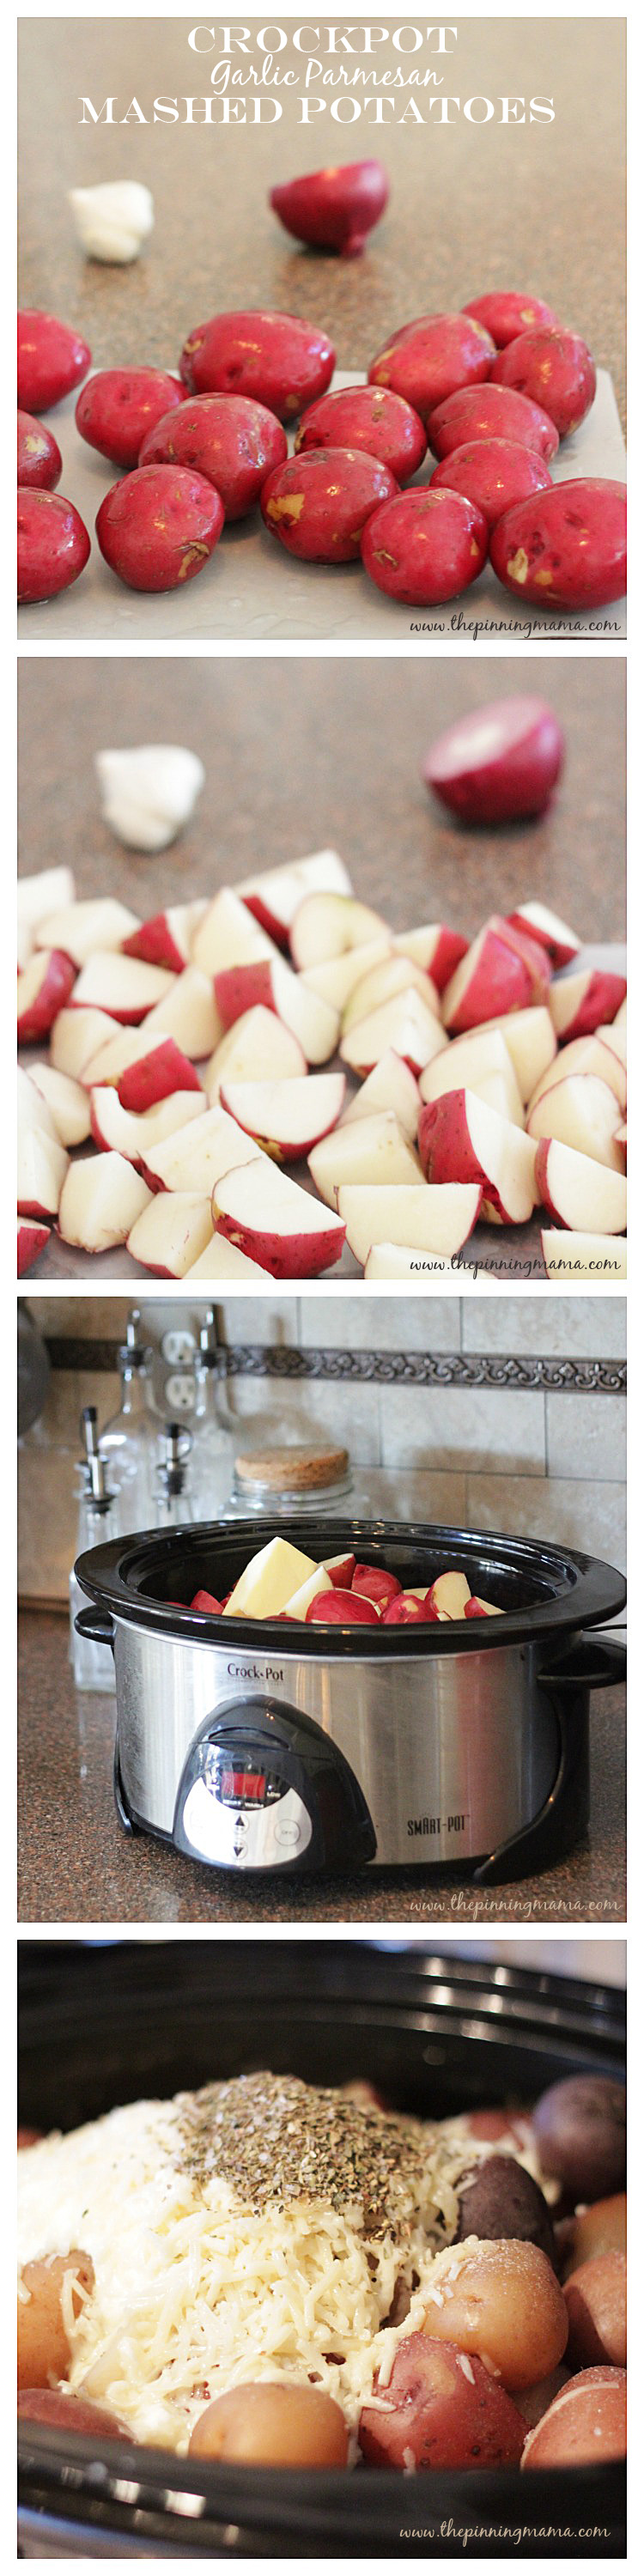 image from www.thepinningmama.com